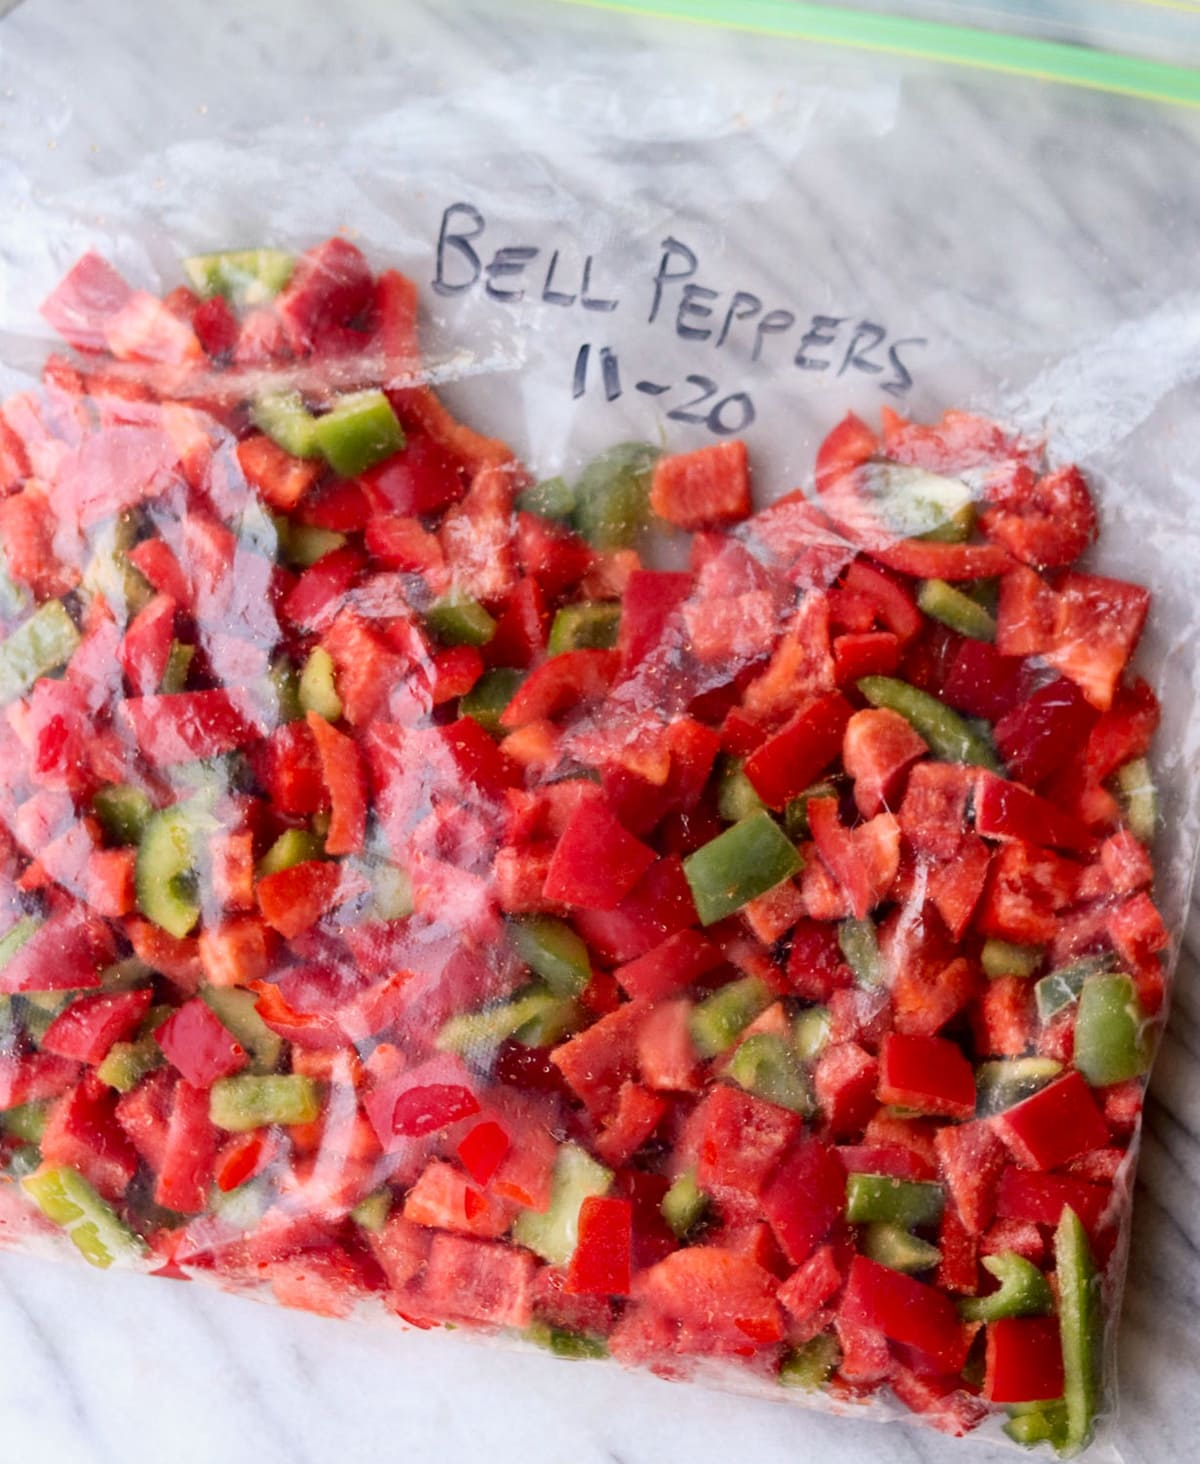 Close up of a zip lock bag filled with diced bell peppers.